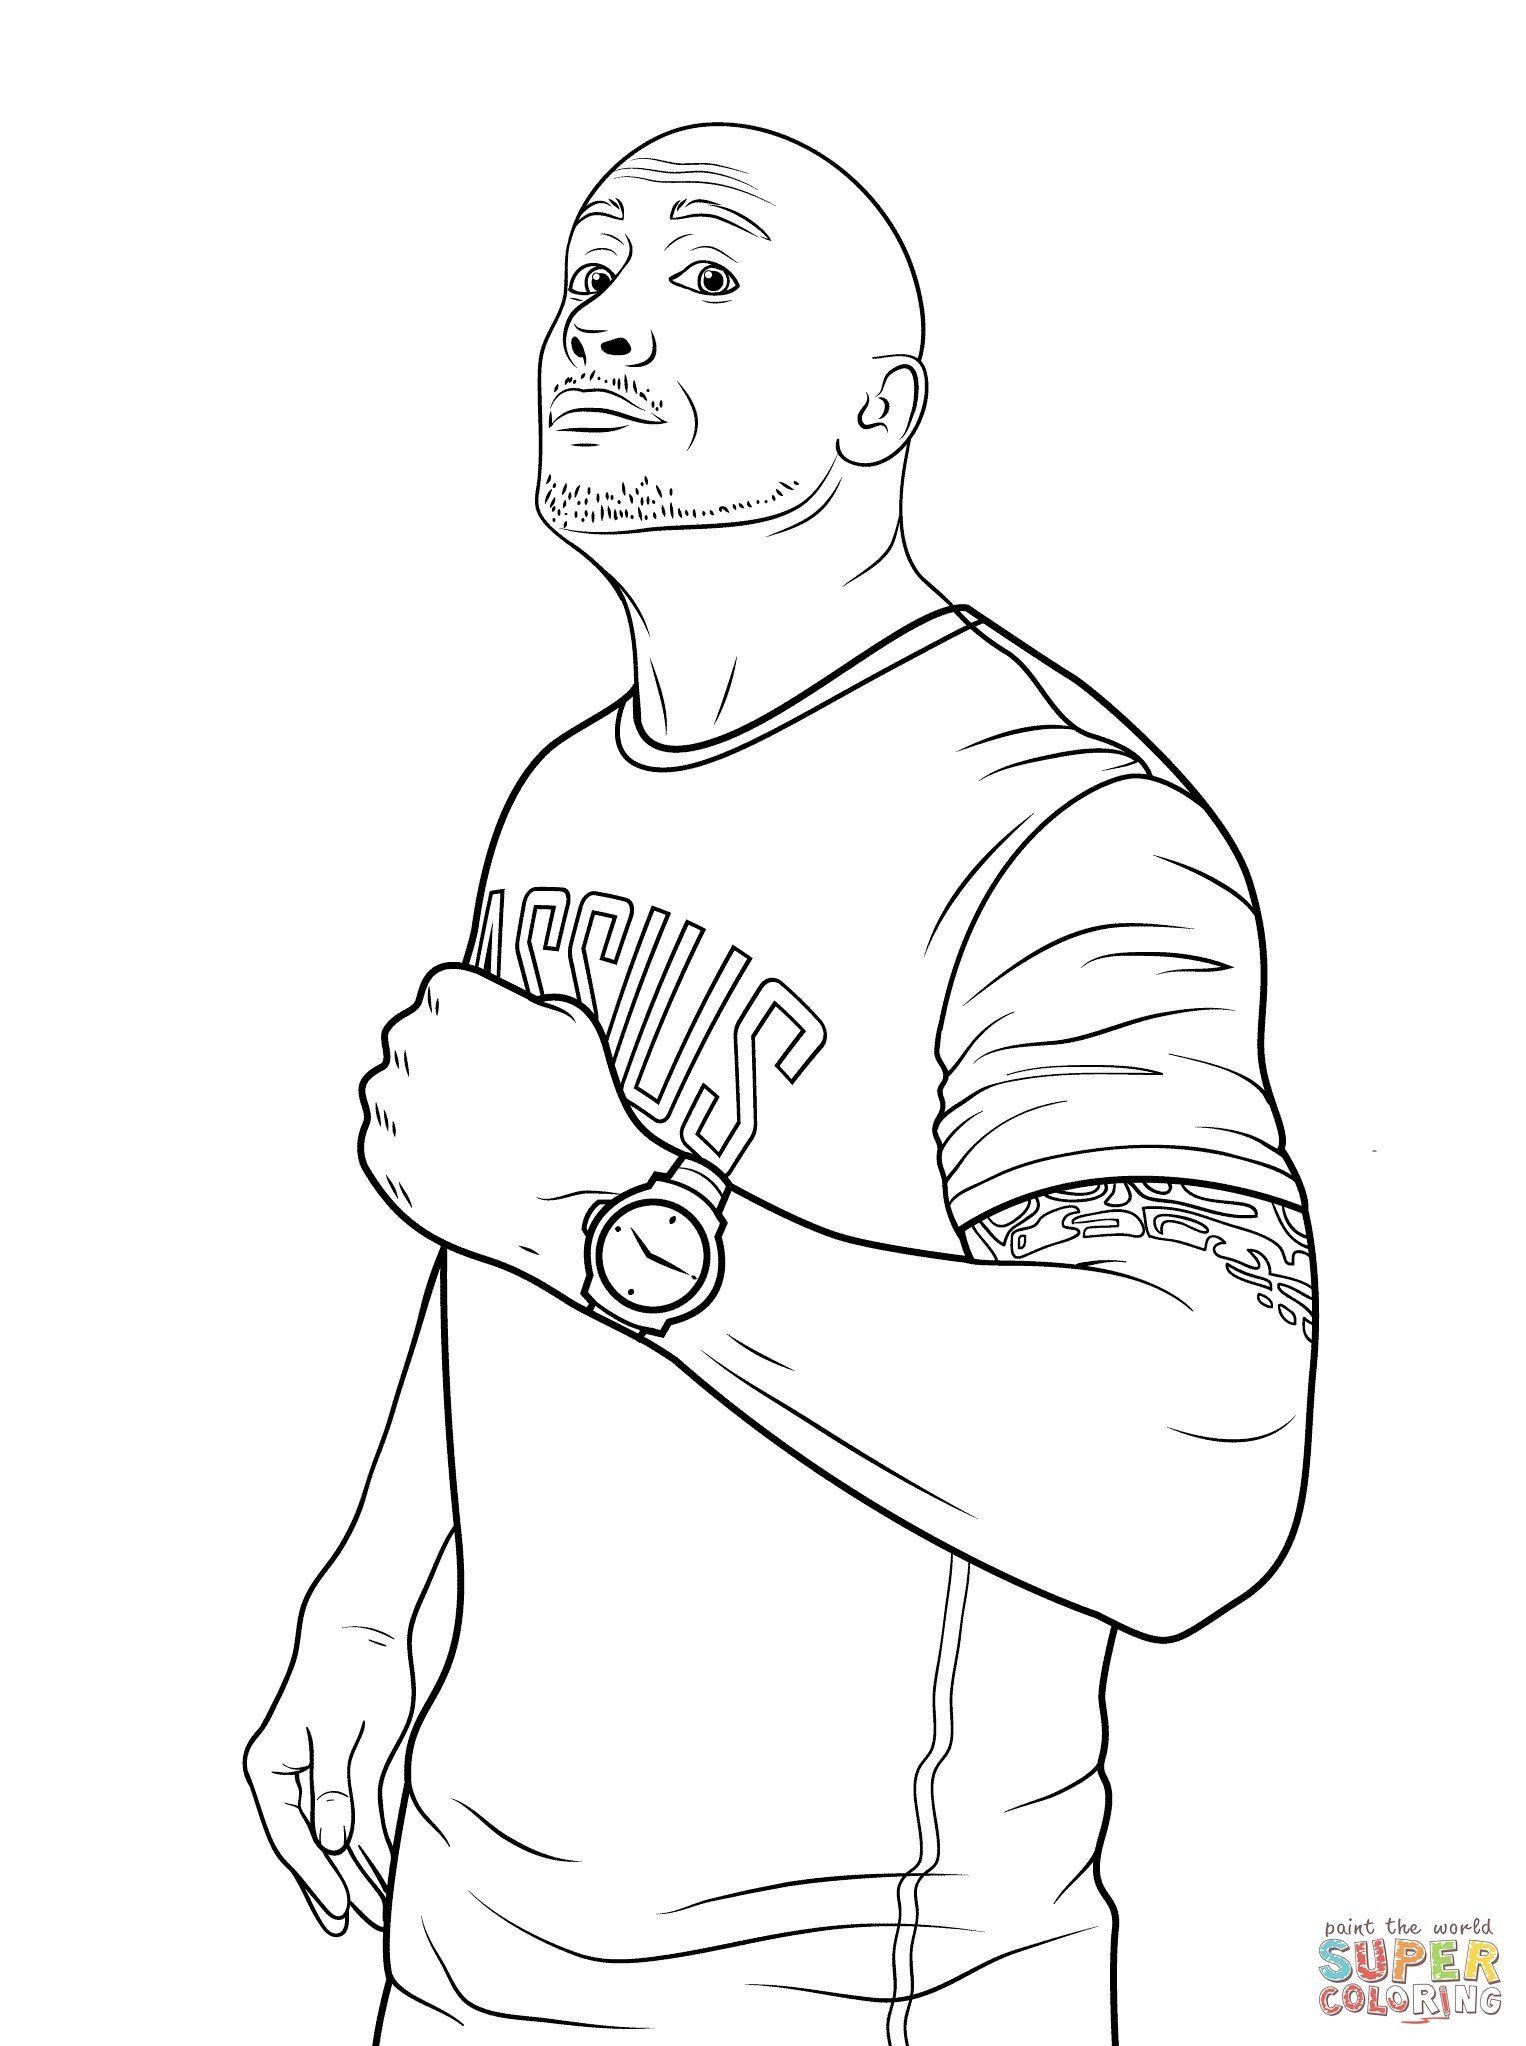 John Cena Coloring Pages Beautiful Coloring Book Kids Download